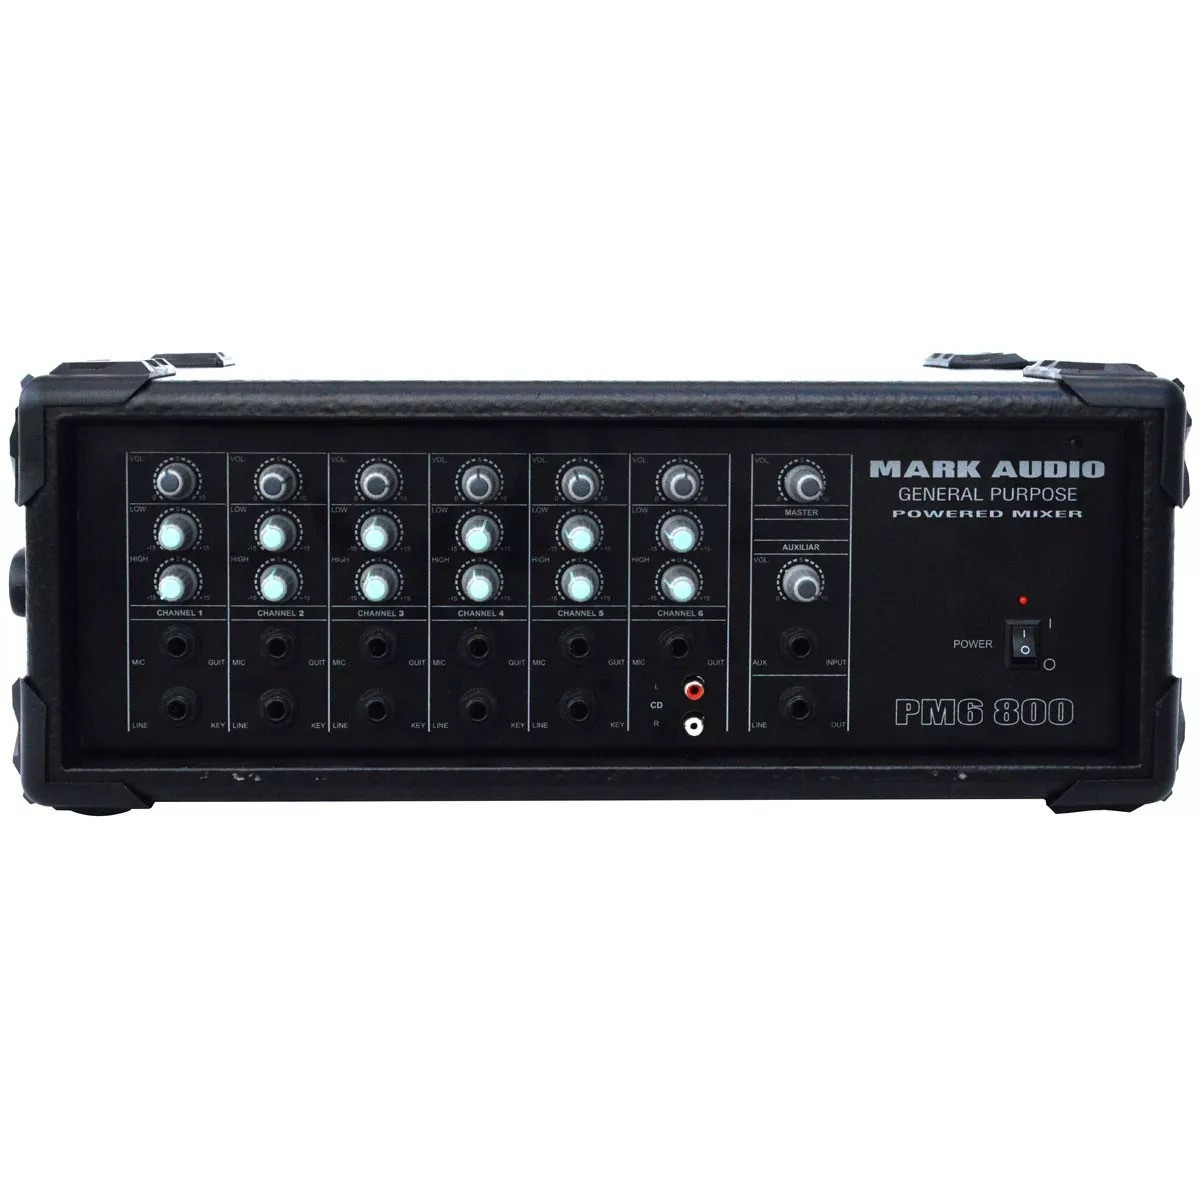 Cabeçote Amplificador Mark Audio com Mixer PM6-800 - 6 canais - 175 Watts RMS